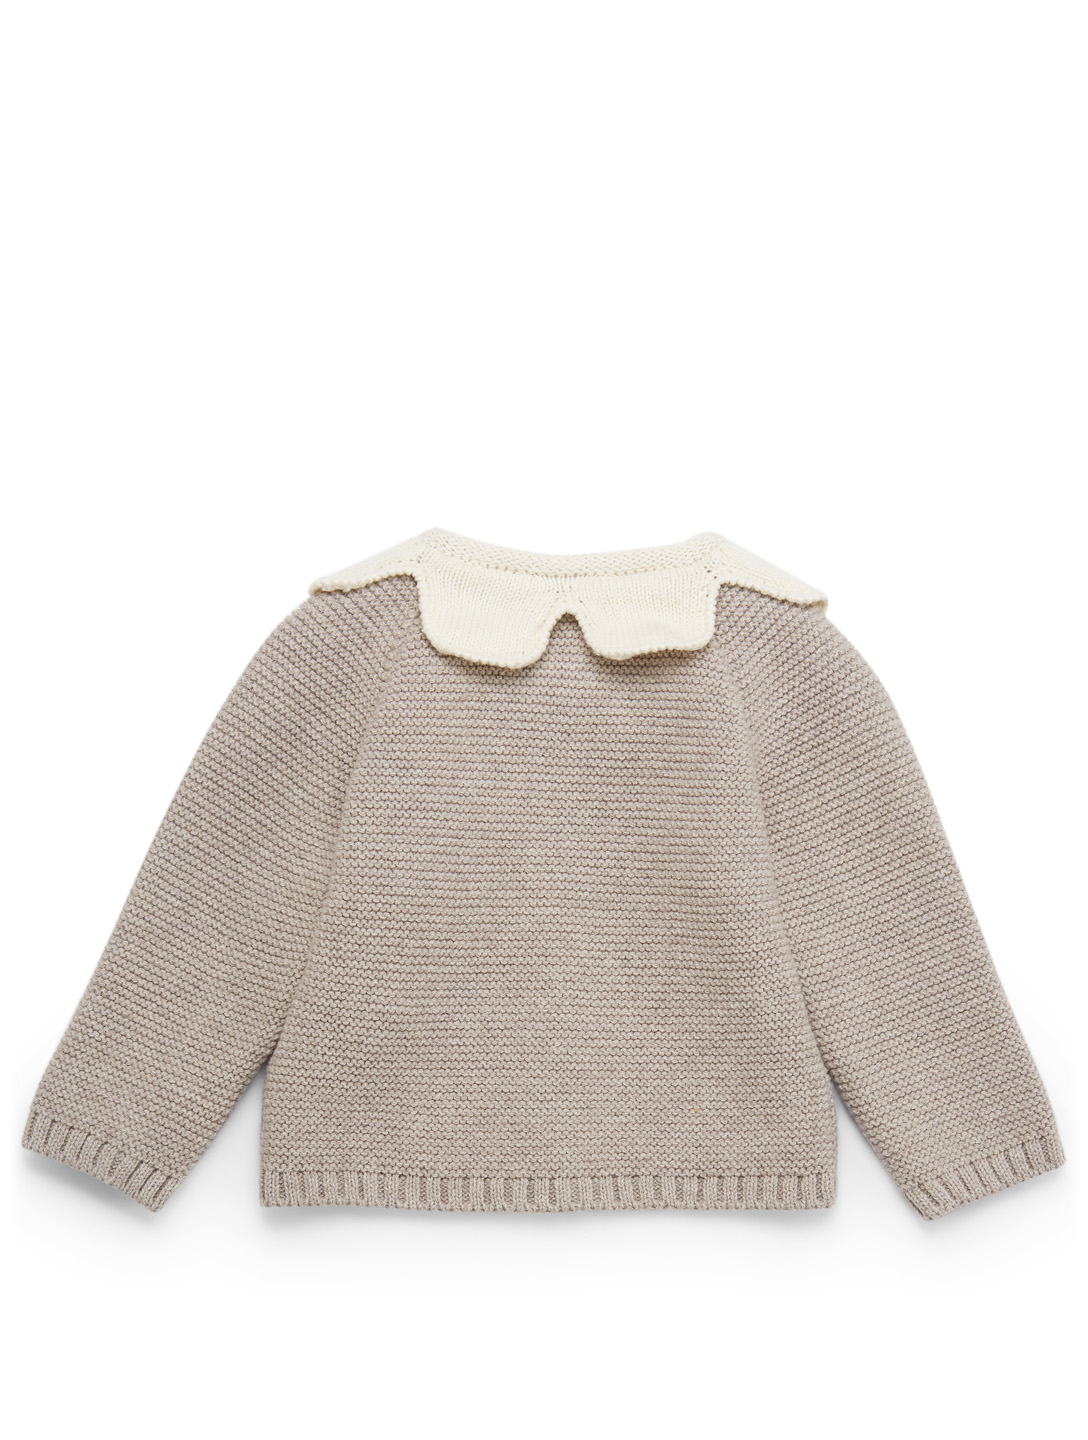 9374f5614db9 ... OEUF Daisy Knit Cardigan H Project White